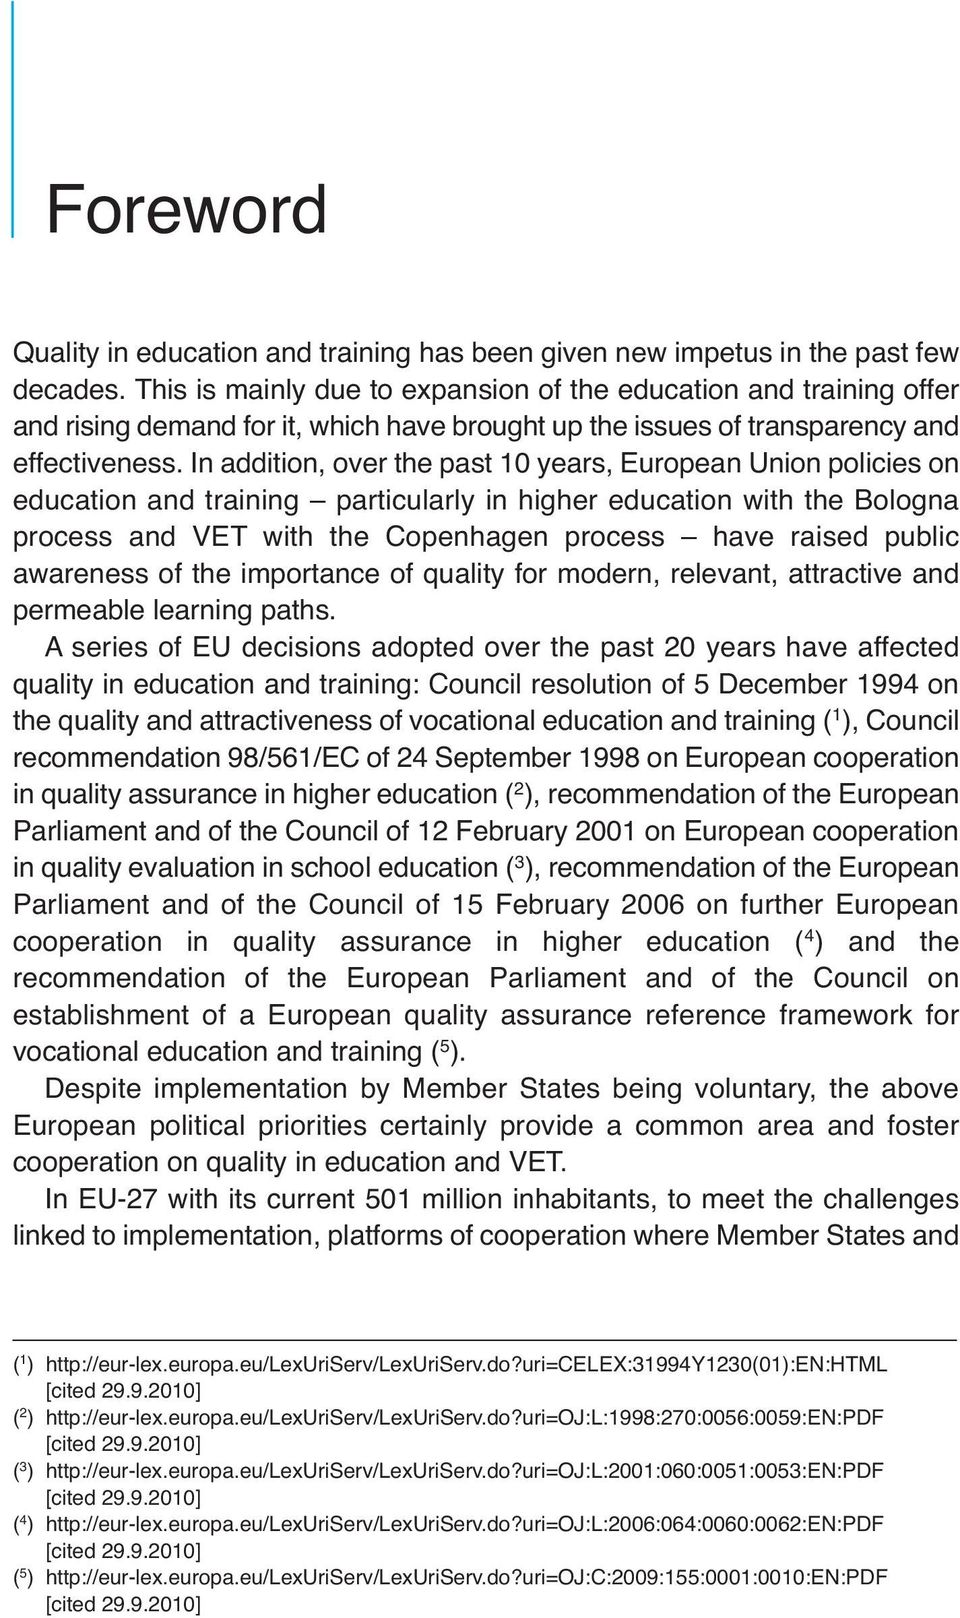 In addition, over the past 10 years, European Union policies on education and training particularly in higher education with the Bologna process and VET with the Copenhagen process have raised public